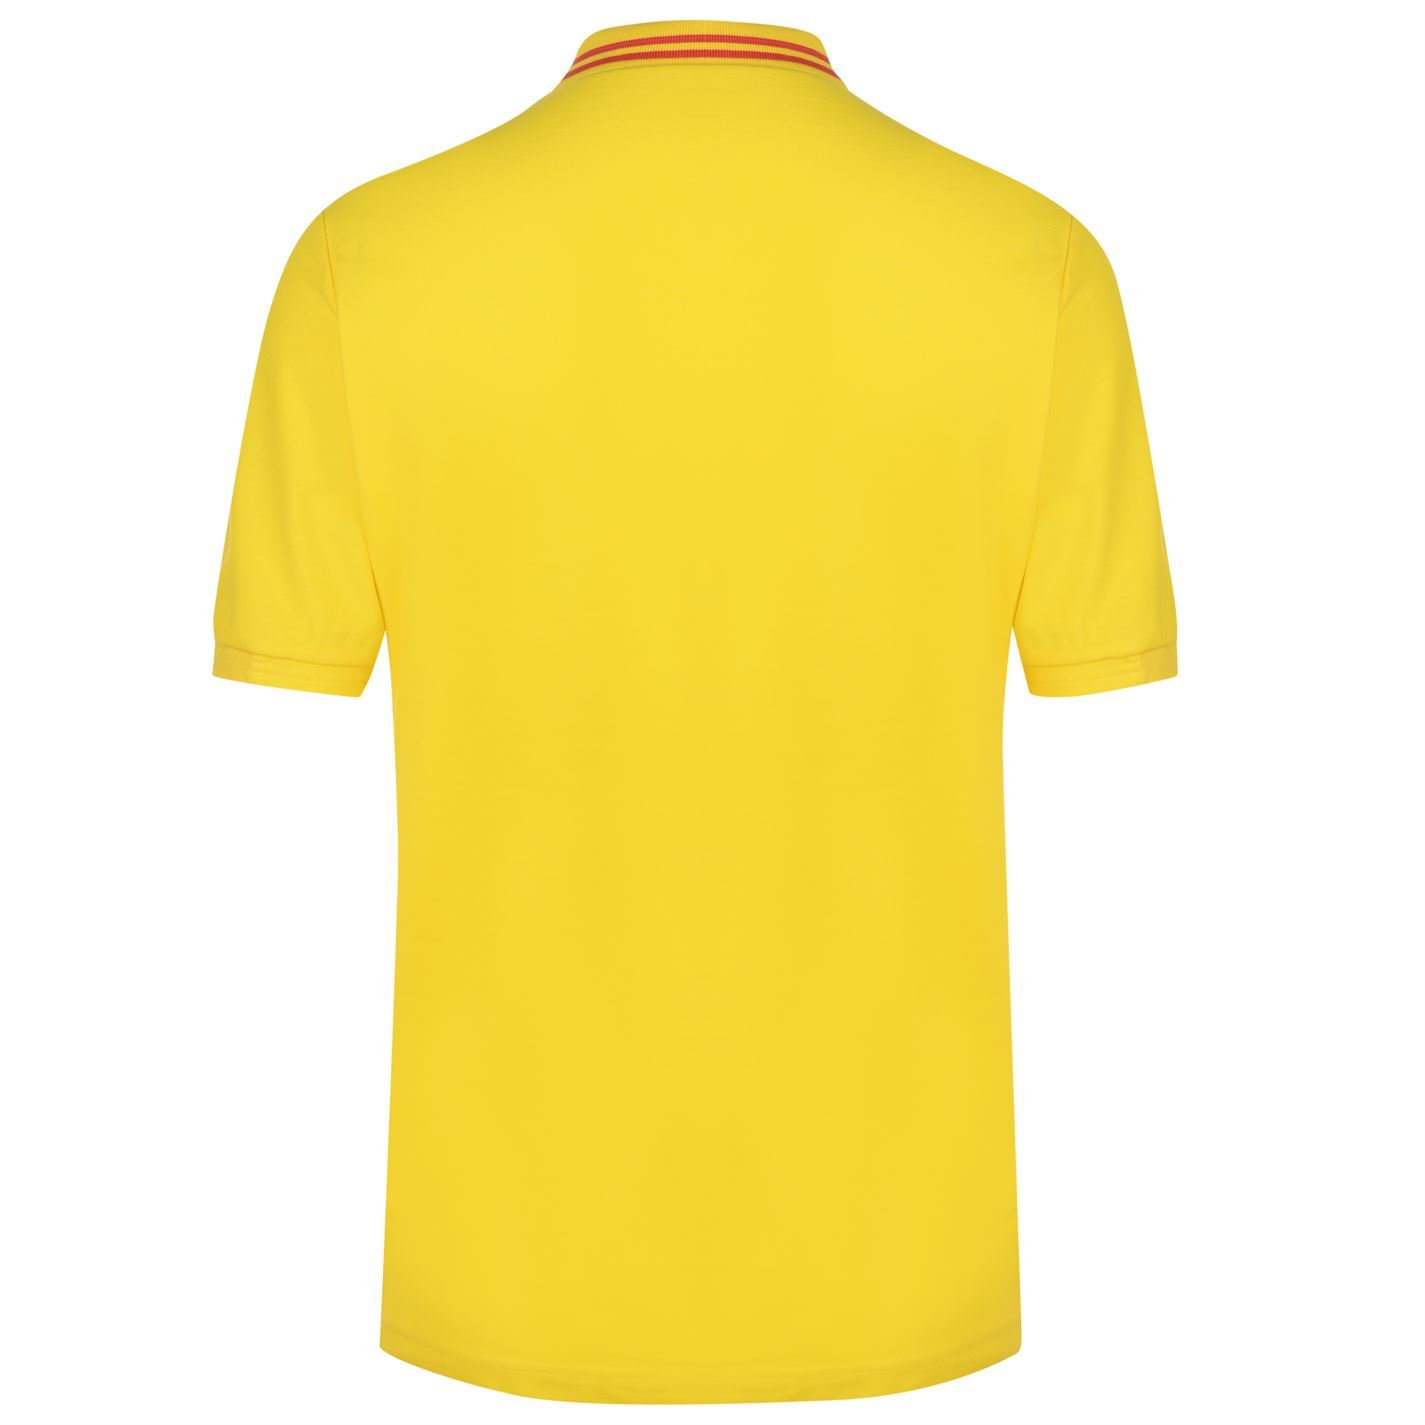 9155c273a ... FIFA World Cup 2018 Colombia Polo Shirt Mens Yellow Football Soccer Top  T-Shirt ...